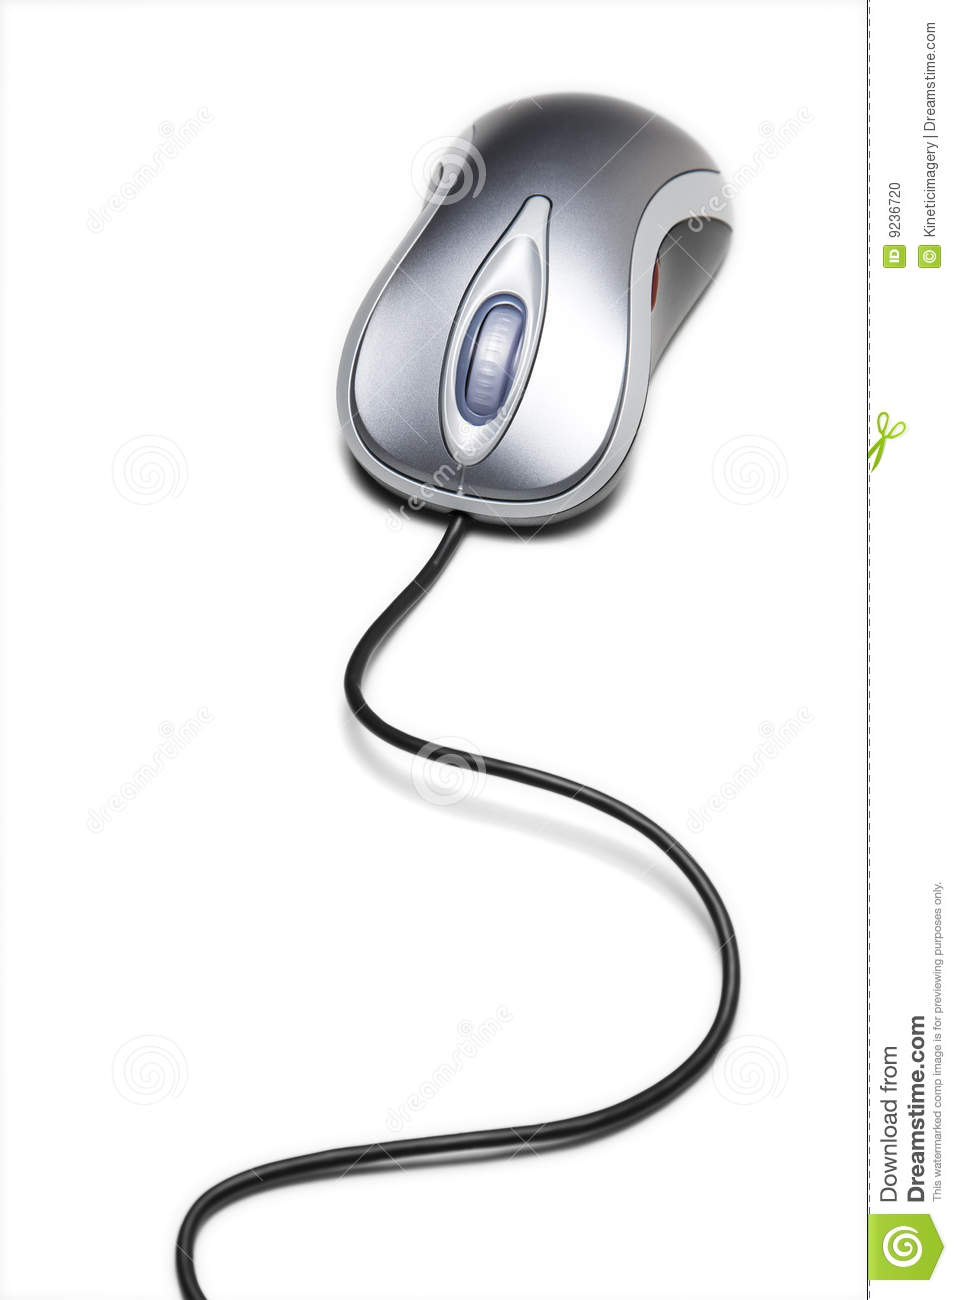 Computer mouse with long cord